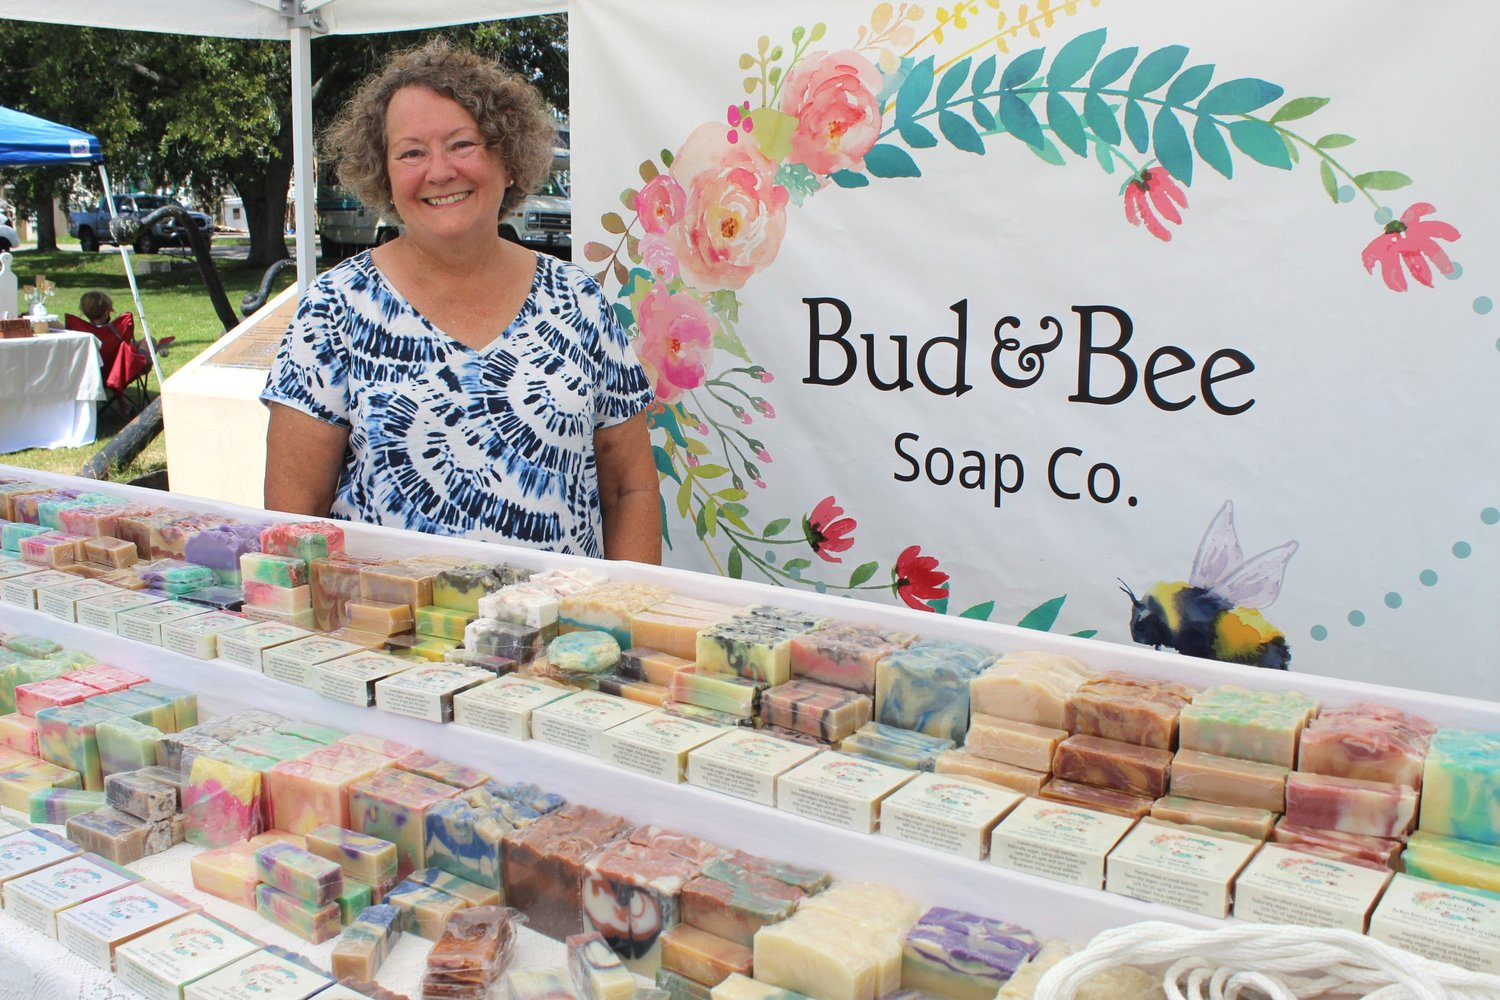 Eastpoint's Linda Carroll, with the Bud & Bee Soap Co., stands with her display of handmade soaps. She will be at the Eastpoint Artisan and Farmers Market this Saturday.